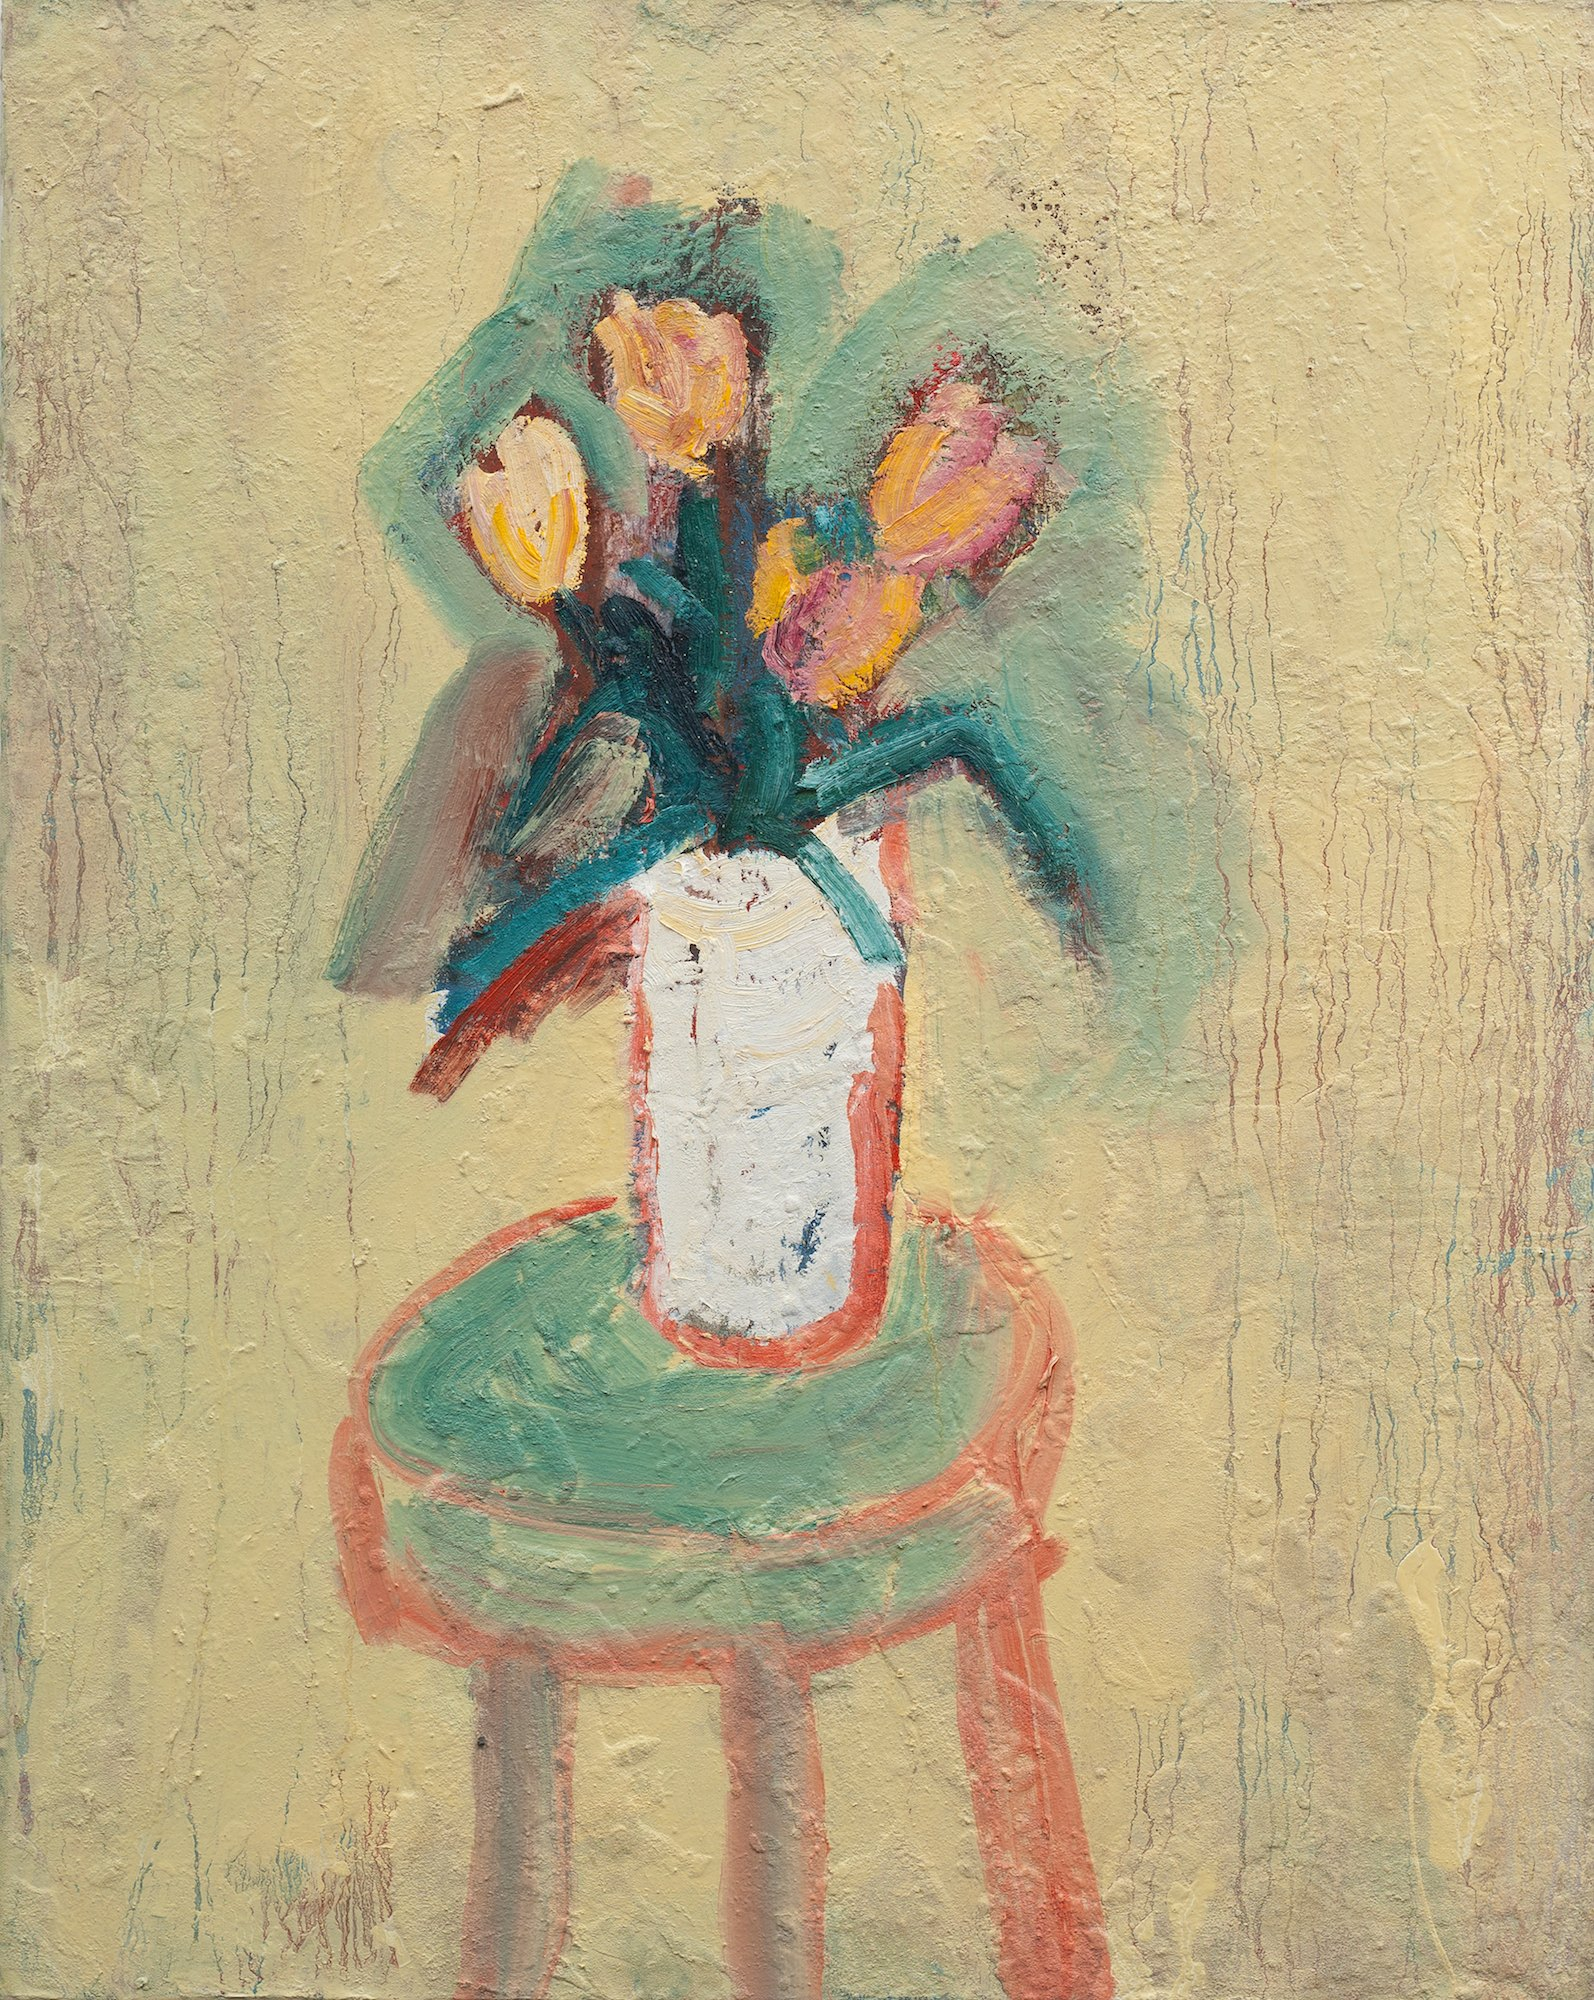 Tulips in White Vase on Stool